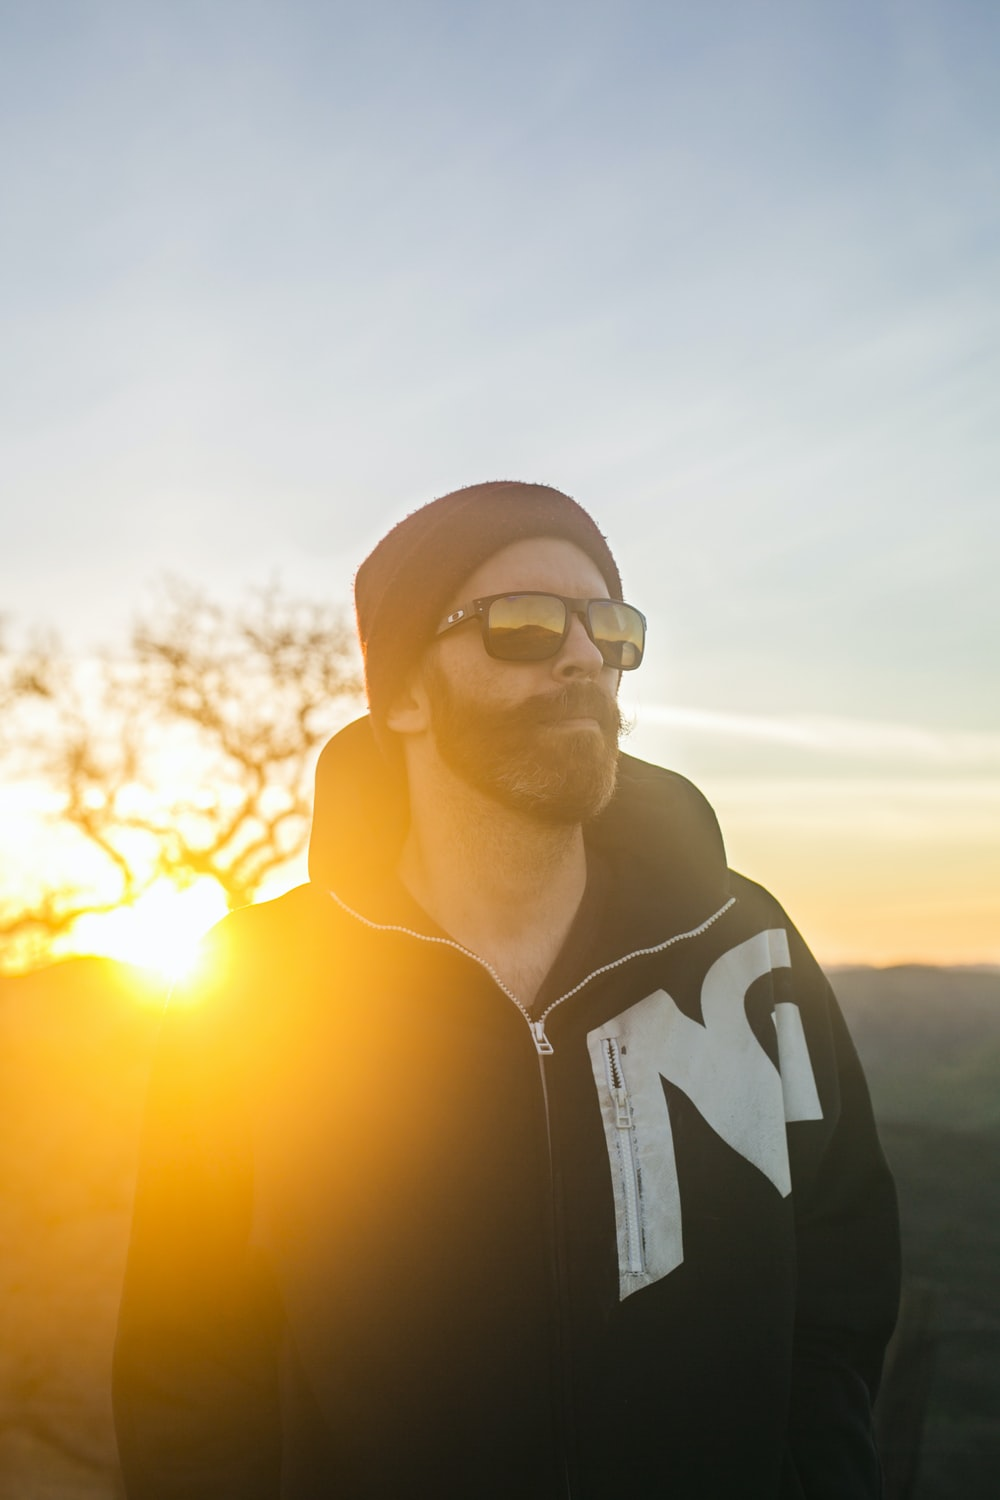 man in black and white hoodie wearing black sunglasses during sunset